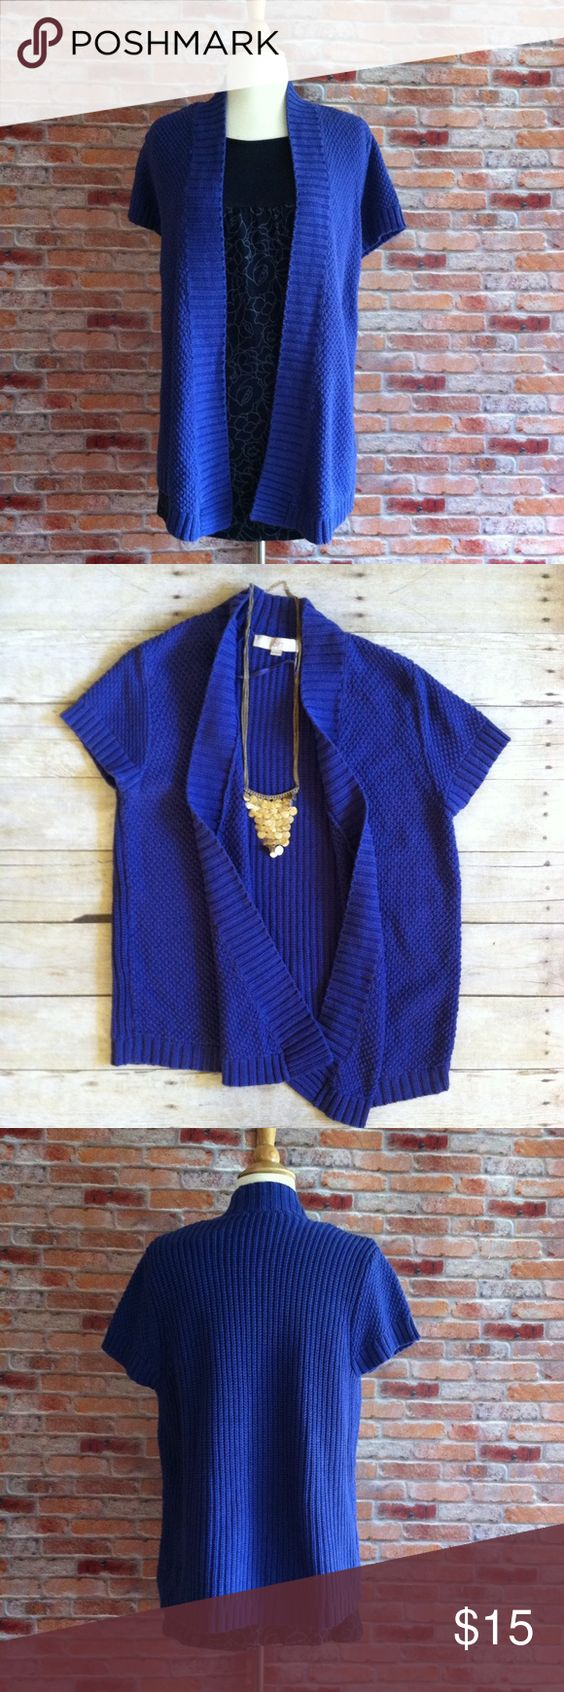 """LOFT open front royal blue cardigan Short sleeve open front cardigan from the Loft. Varied knit adds interest. Front corners hang slightly longer. In good preloved condition, show a bit of wear from wash but otherwise great shape. 100% cotton. 29""""L. Approx 19"""" bust laying flat size large. LOFT Sweaters Cardigans"""